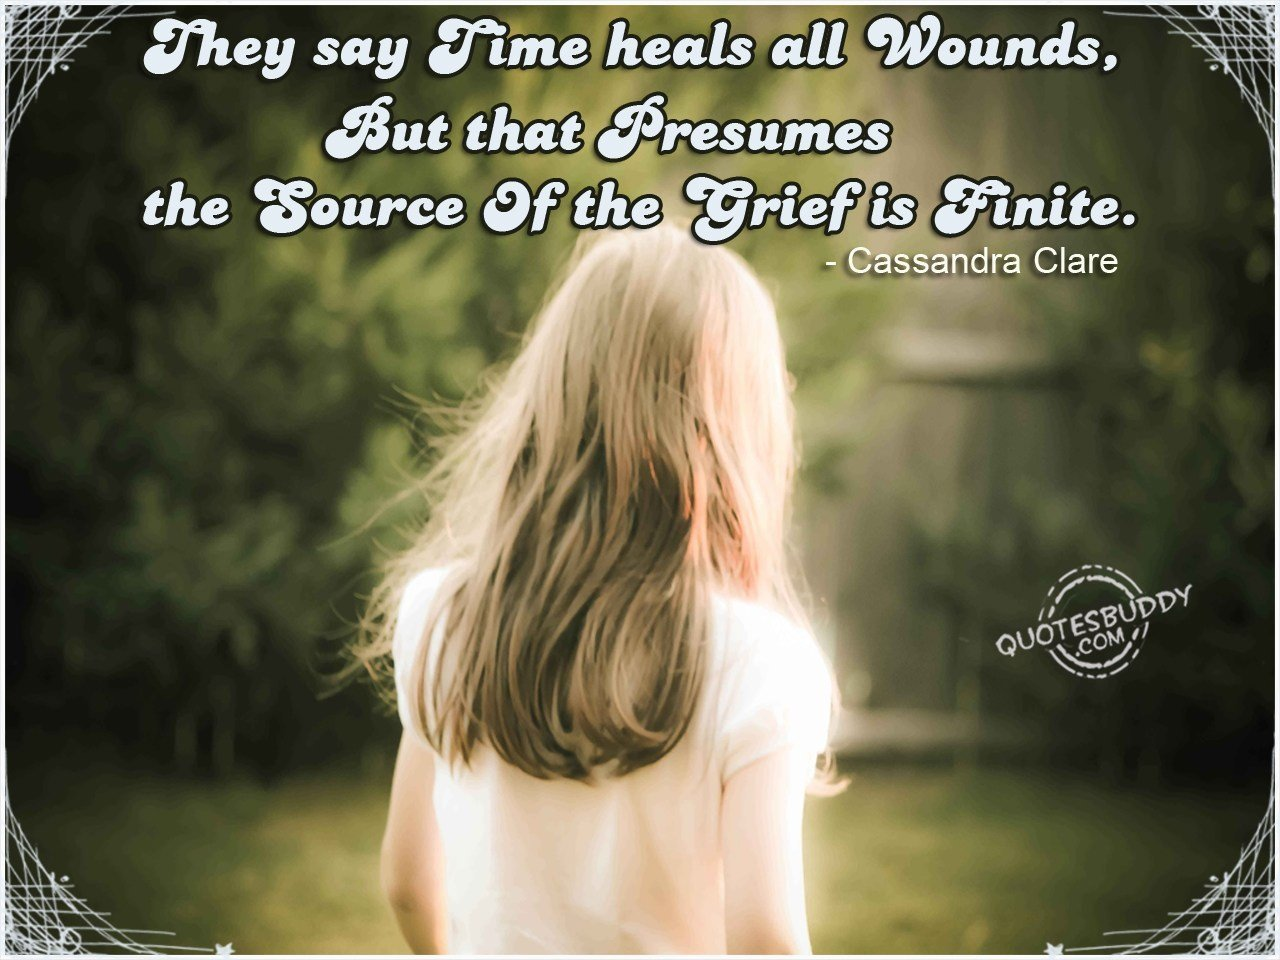 A Grief Support Blog